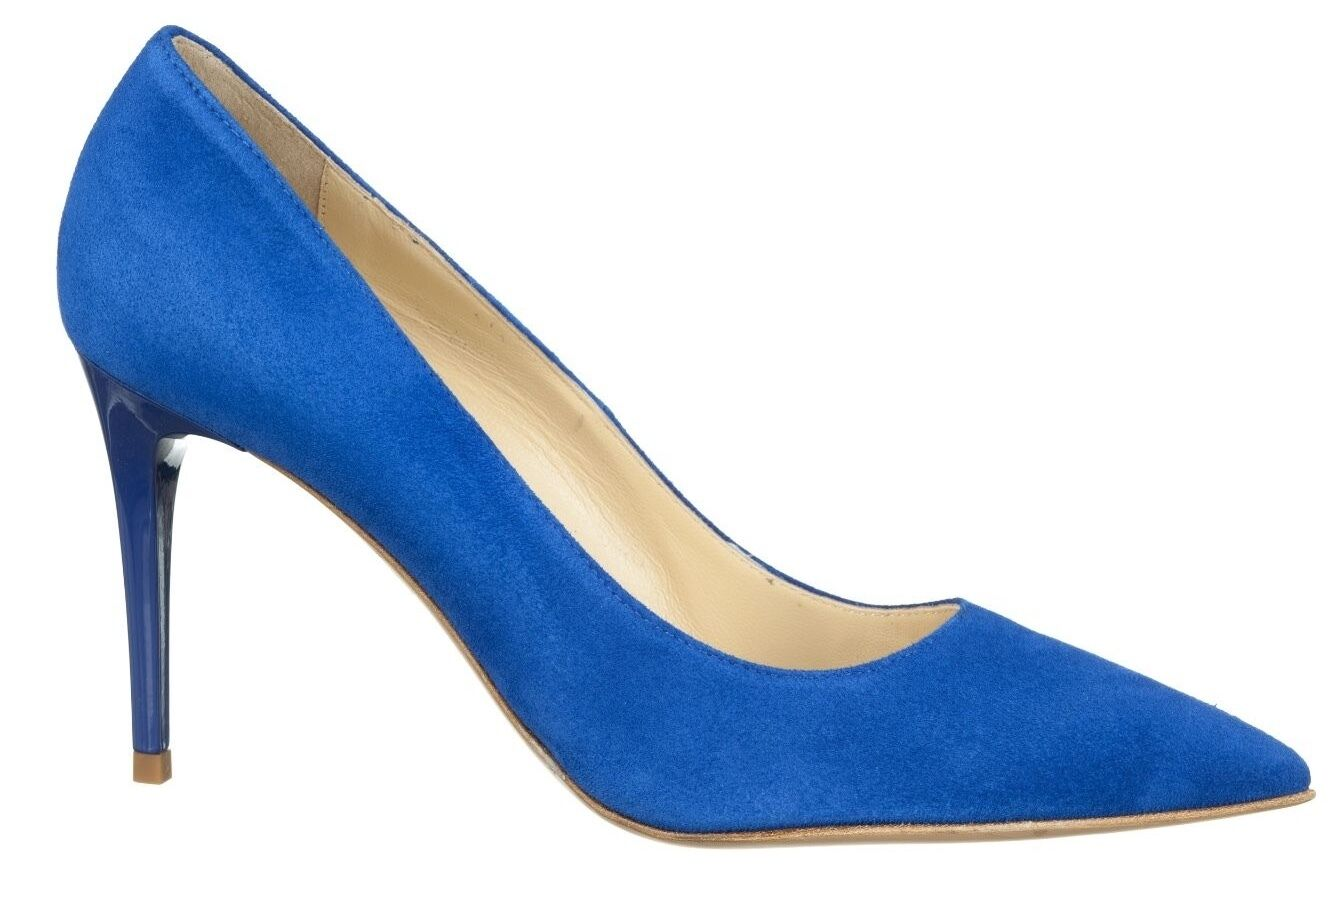 MORI MADE MADE MADE IN ITALY POINTY HEELS PUMPS zapatos DECOLTE PELLE ELECTRIC azul azul 38  Envio gratis en todas las ordenes